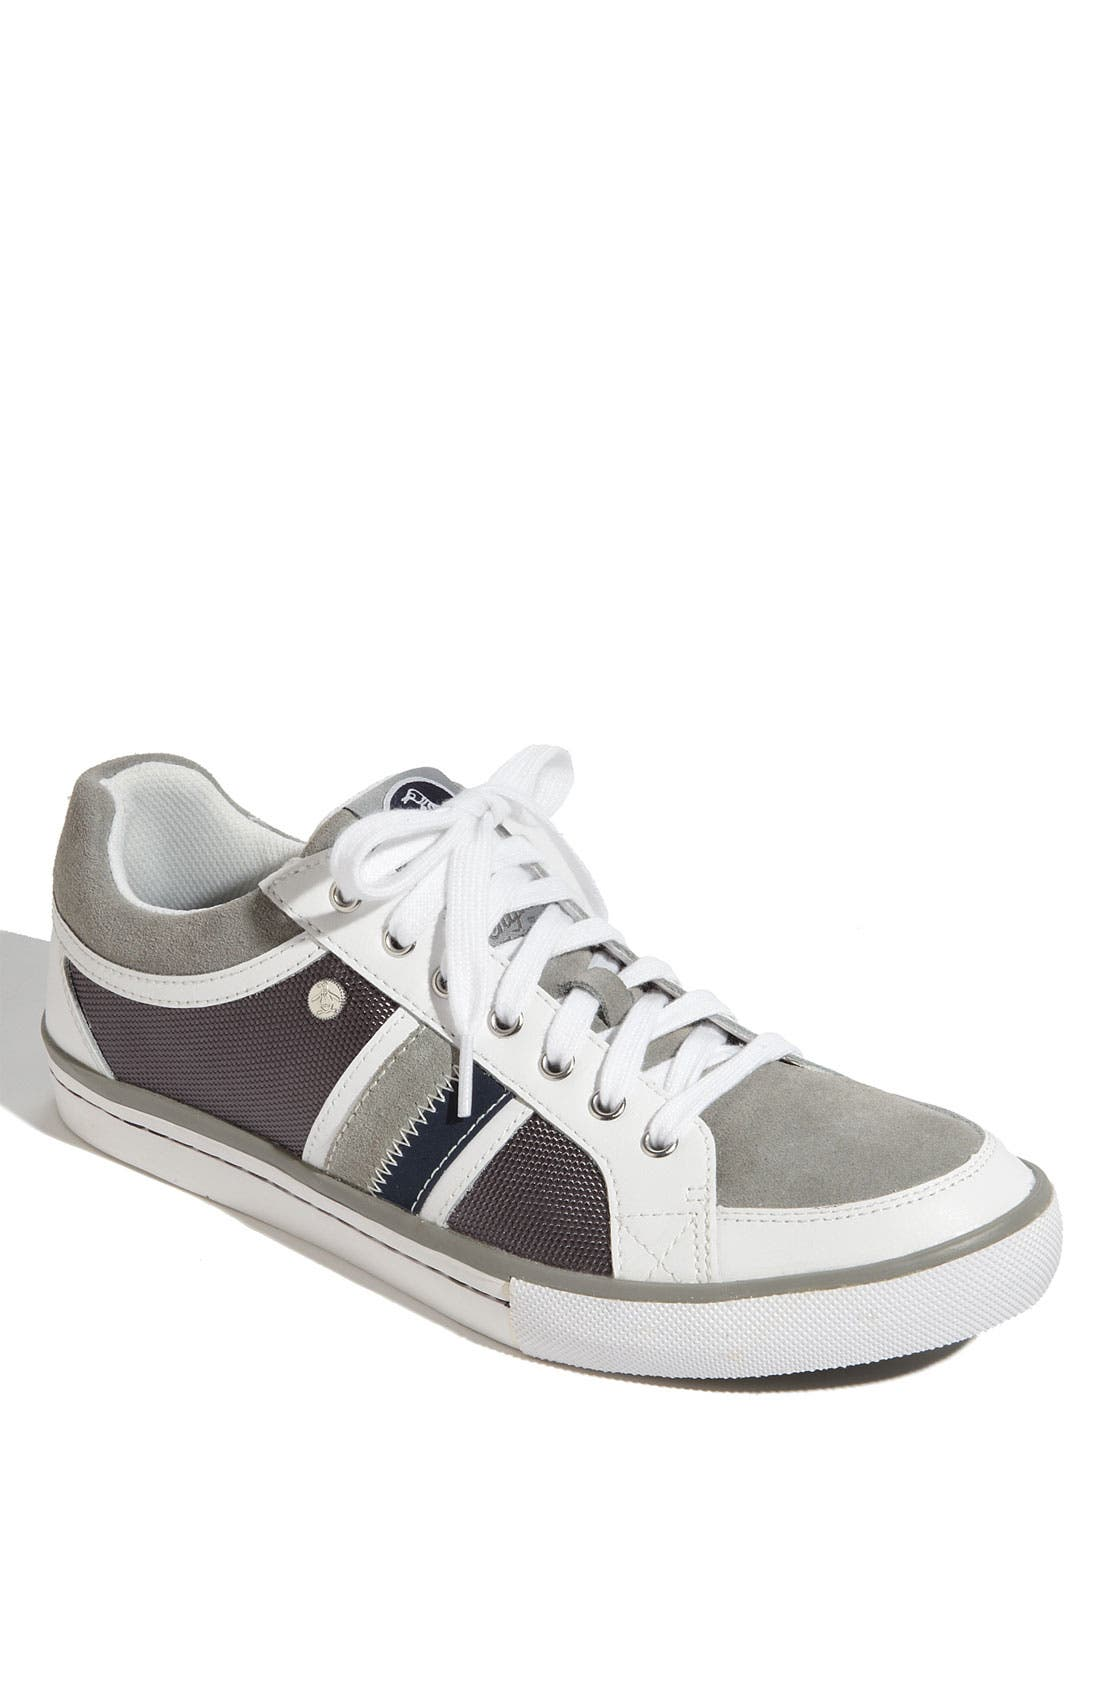 Alternate Image 1 Selected - Original Penguin 'Thaw' Sneaker